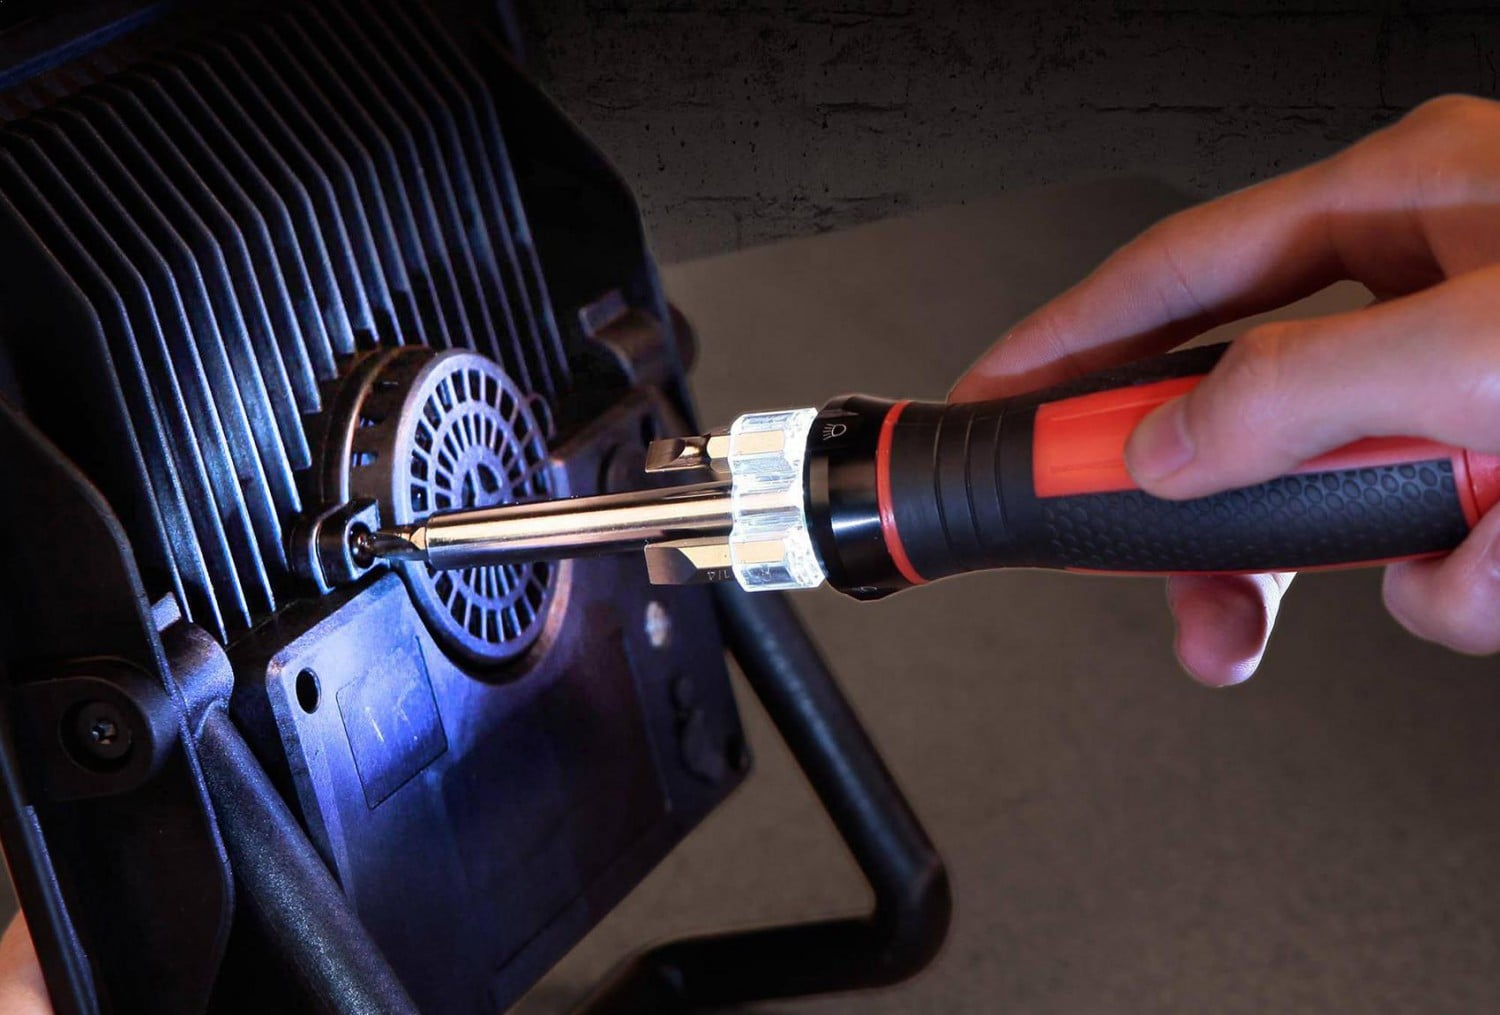 Hyper Tough 4-in-1 LED Lighted Screwdriver with Batteries